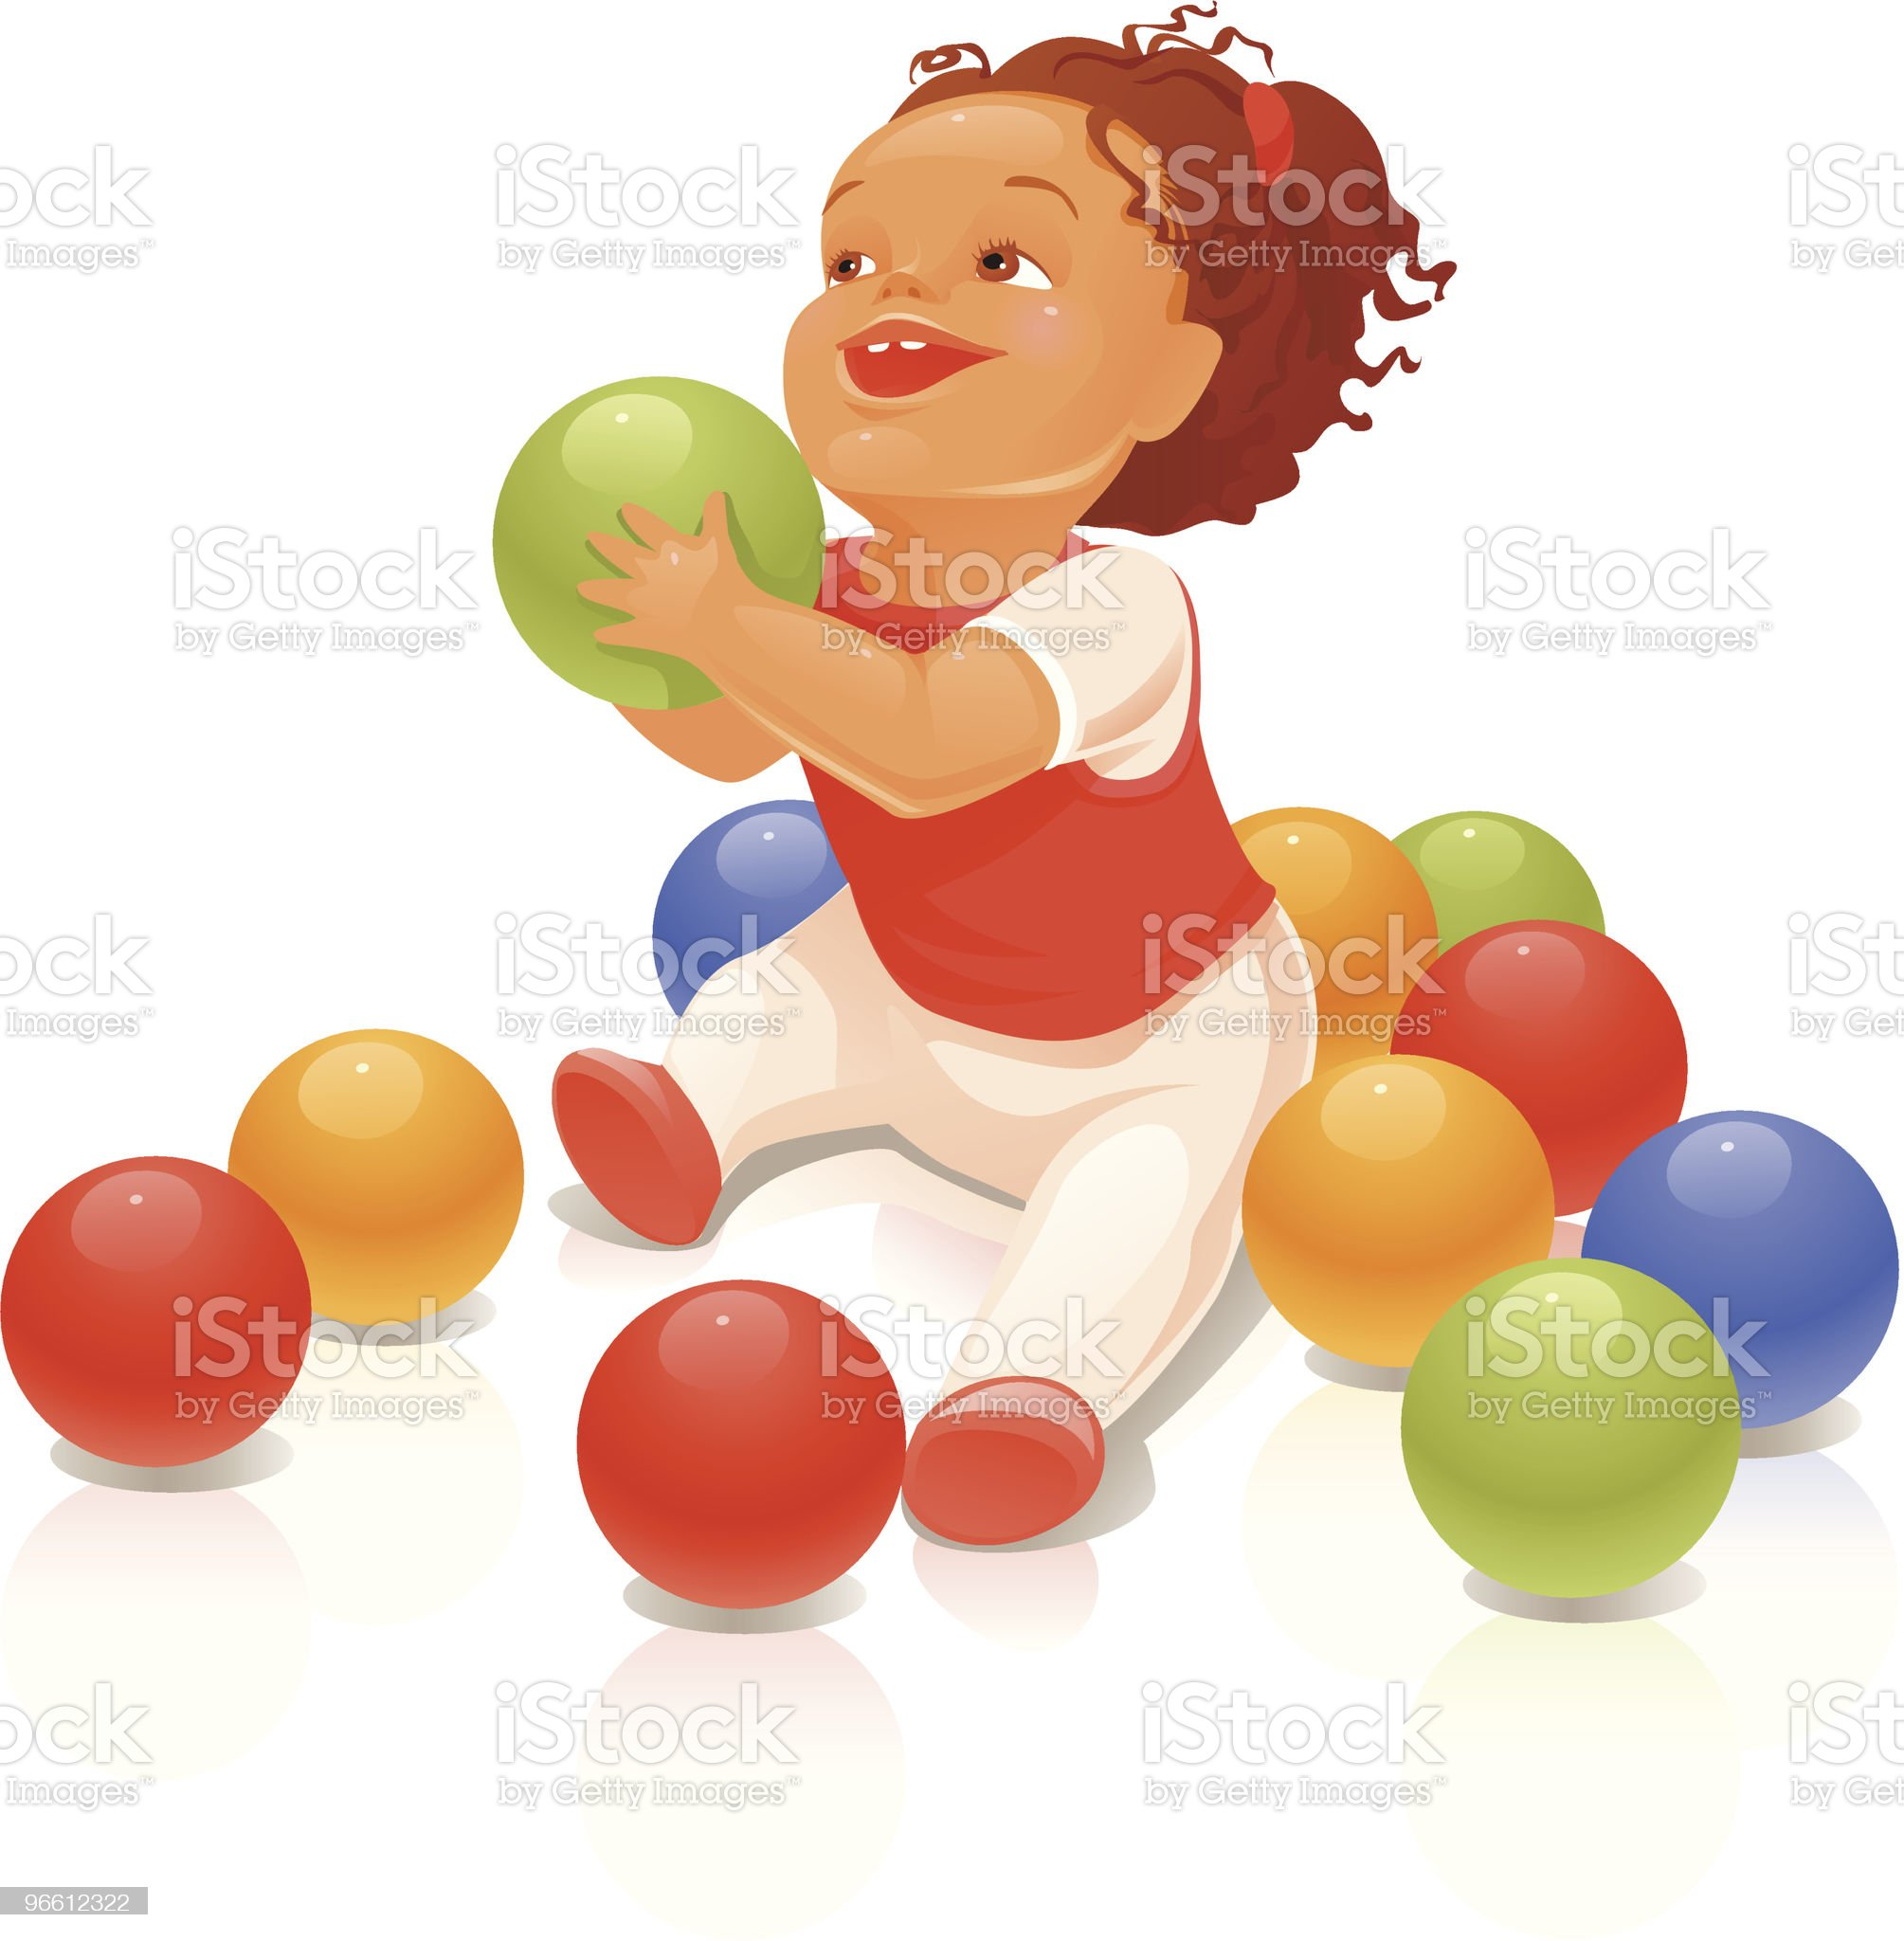 Child with a ball royalty-free stock vector art